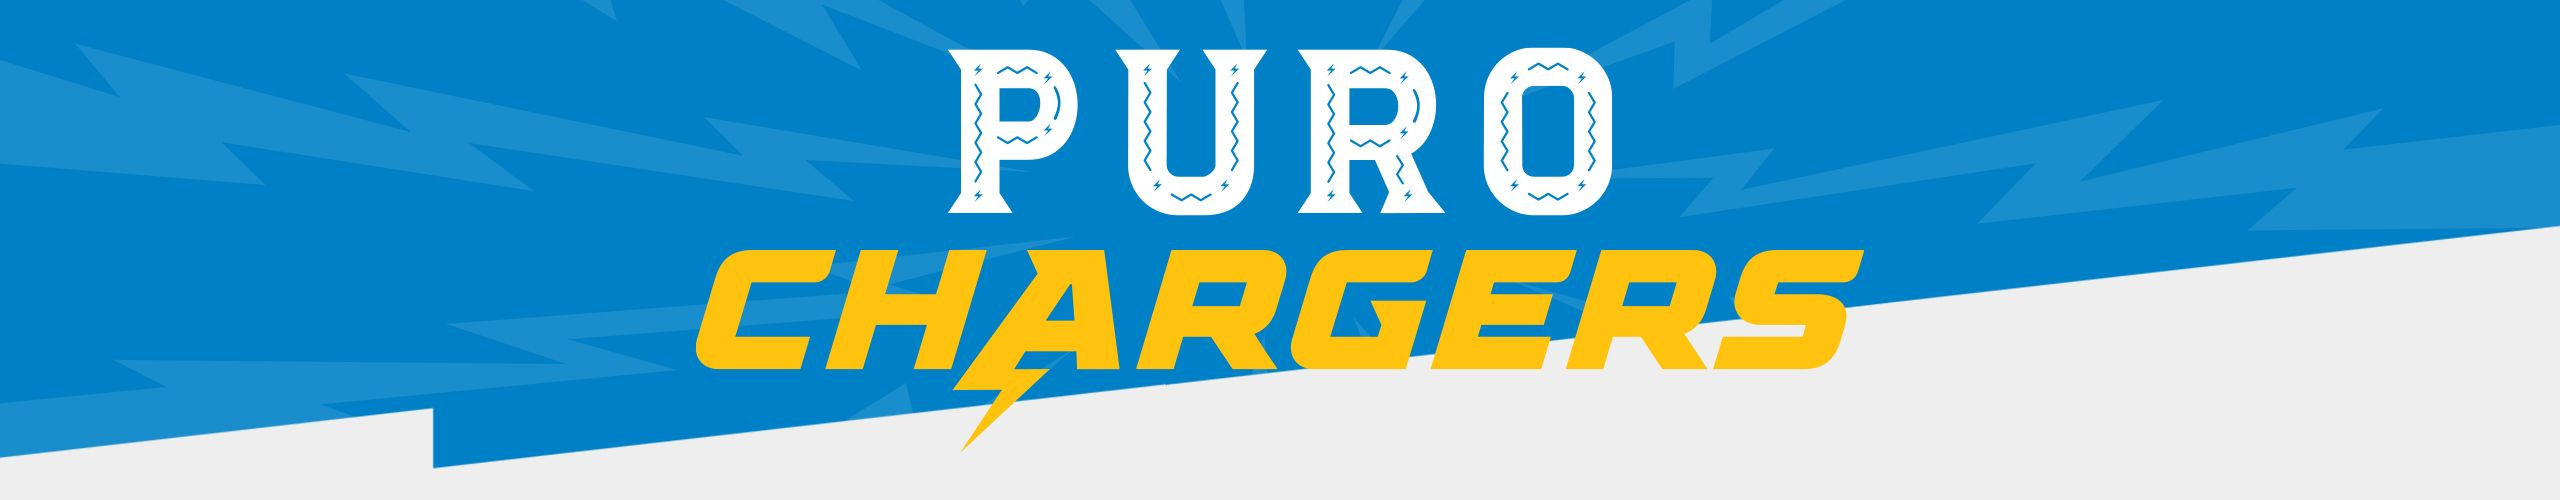 201012_Site_Pure_Chargers_Header